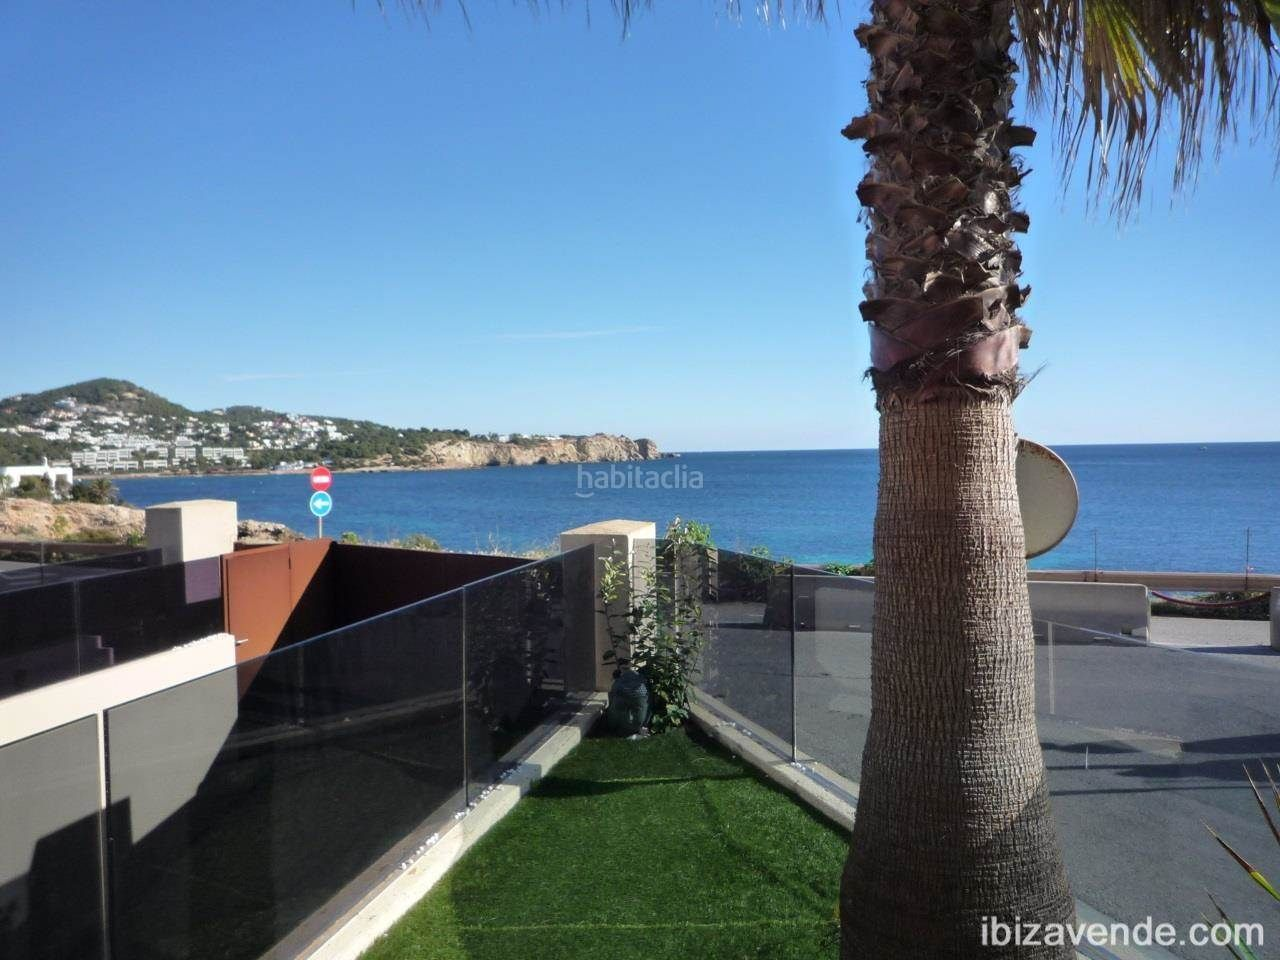 Rent Semi detached house in Marina Botafoc-Talamanca. Fantástica casa en botafoc con impresionantes vistas al mar